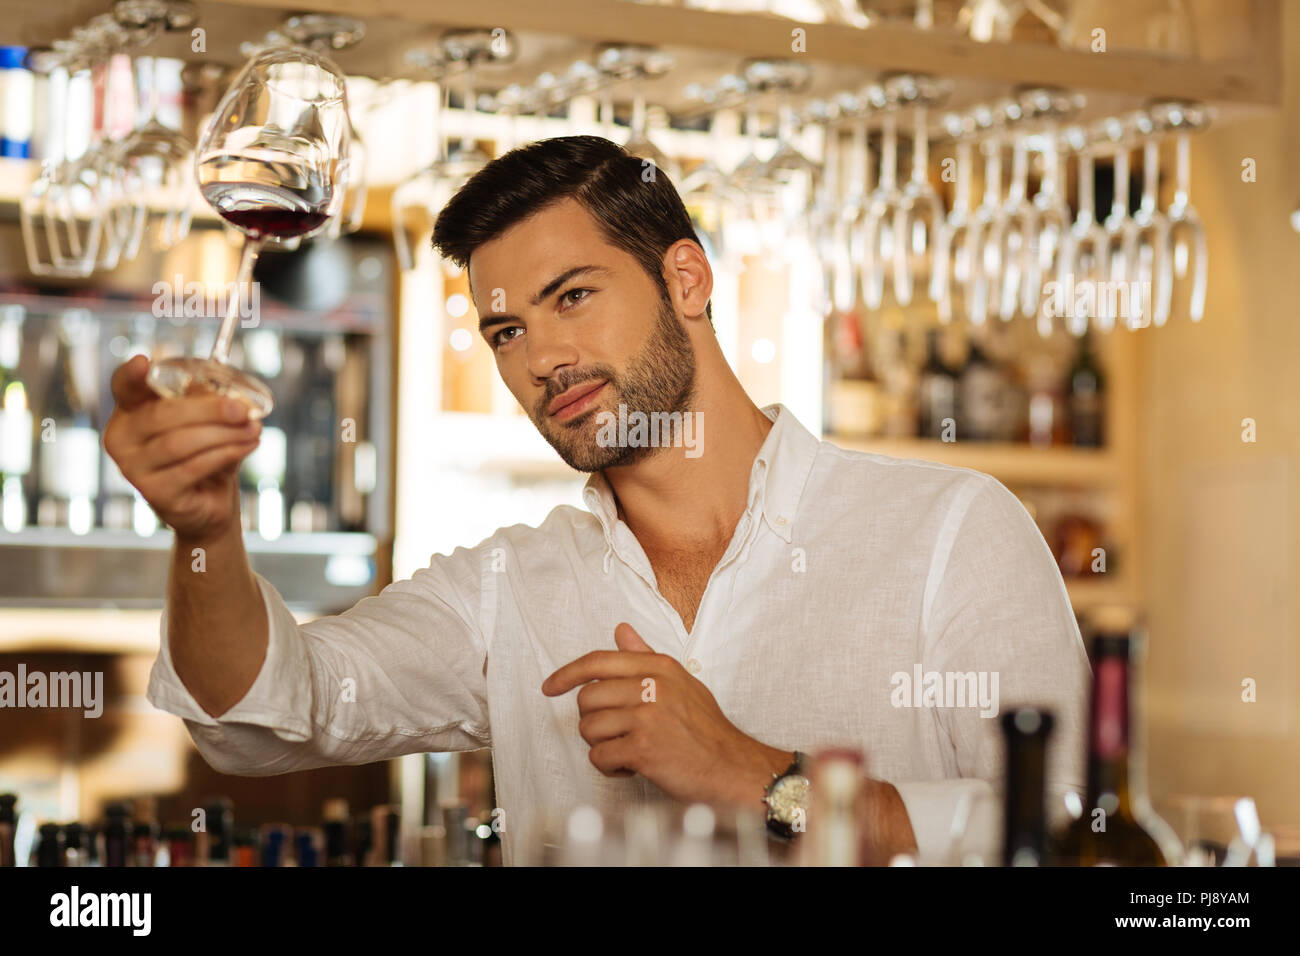 Delighted positive man looking at the glass with wine - Stock Image